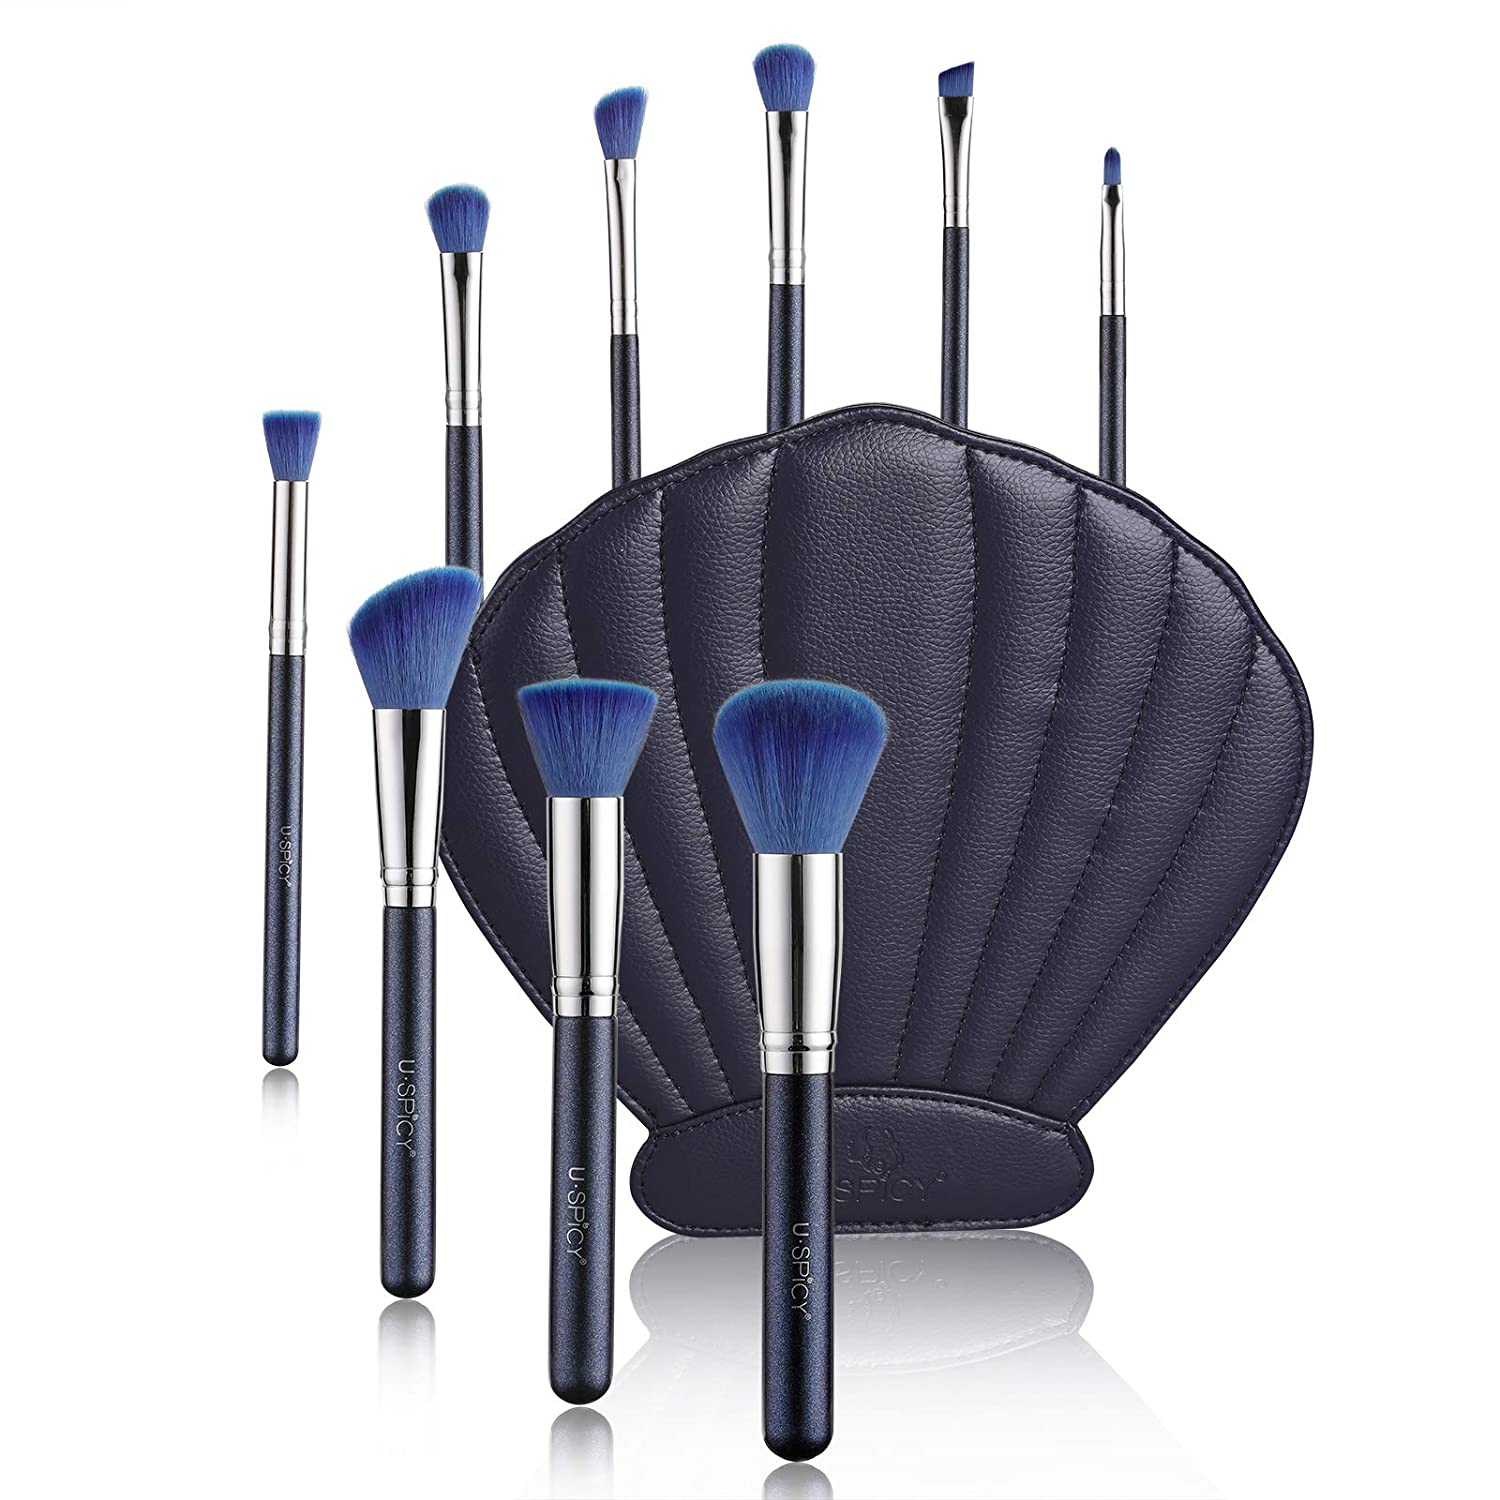 Makeup Brushes, USpicy 10 Pieces Professional Makeup Brush Set with Seashell Shaped PU Leather Case (Soft Synthetic Fiber for Uniform Application of Blush, Creams, Liquids, Contouring & Powders)-Blue